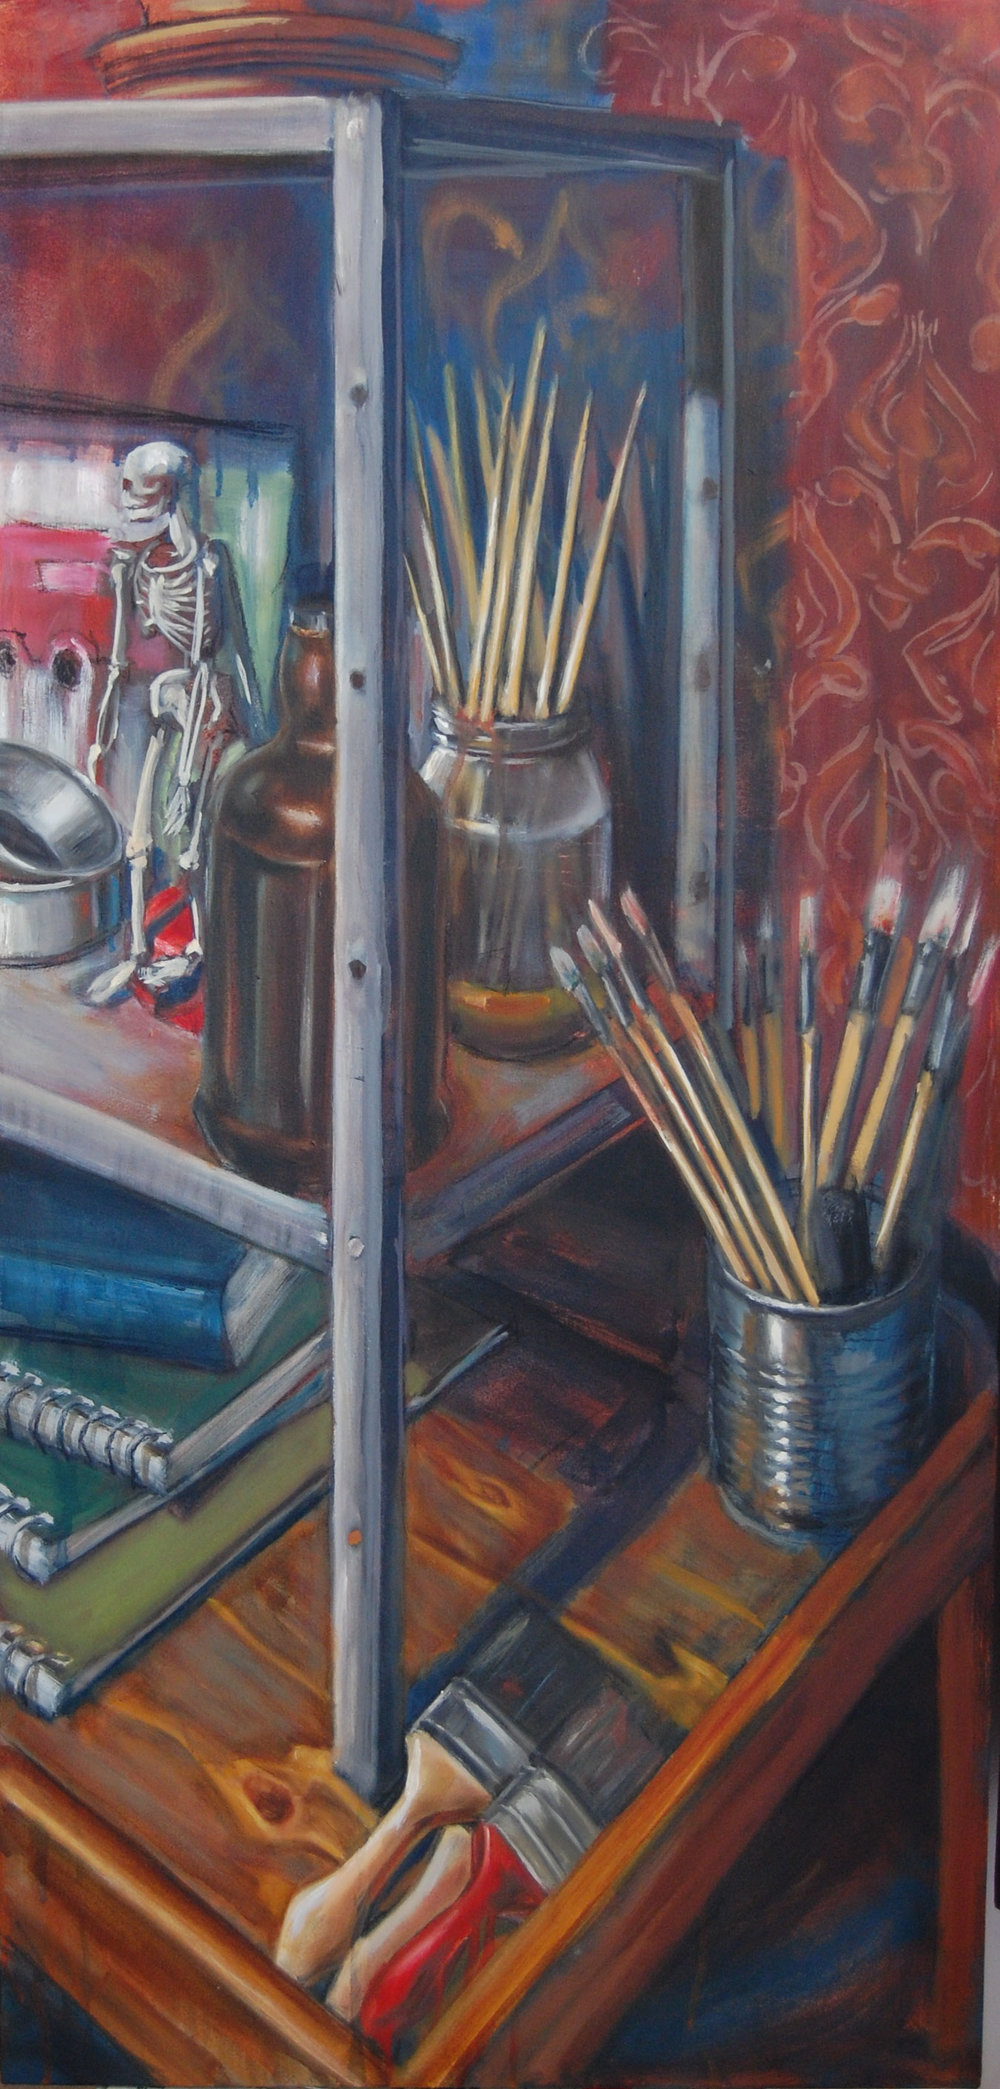 Still-life with brushes 22x46inch oil on canvas.jpg